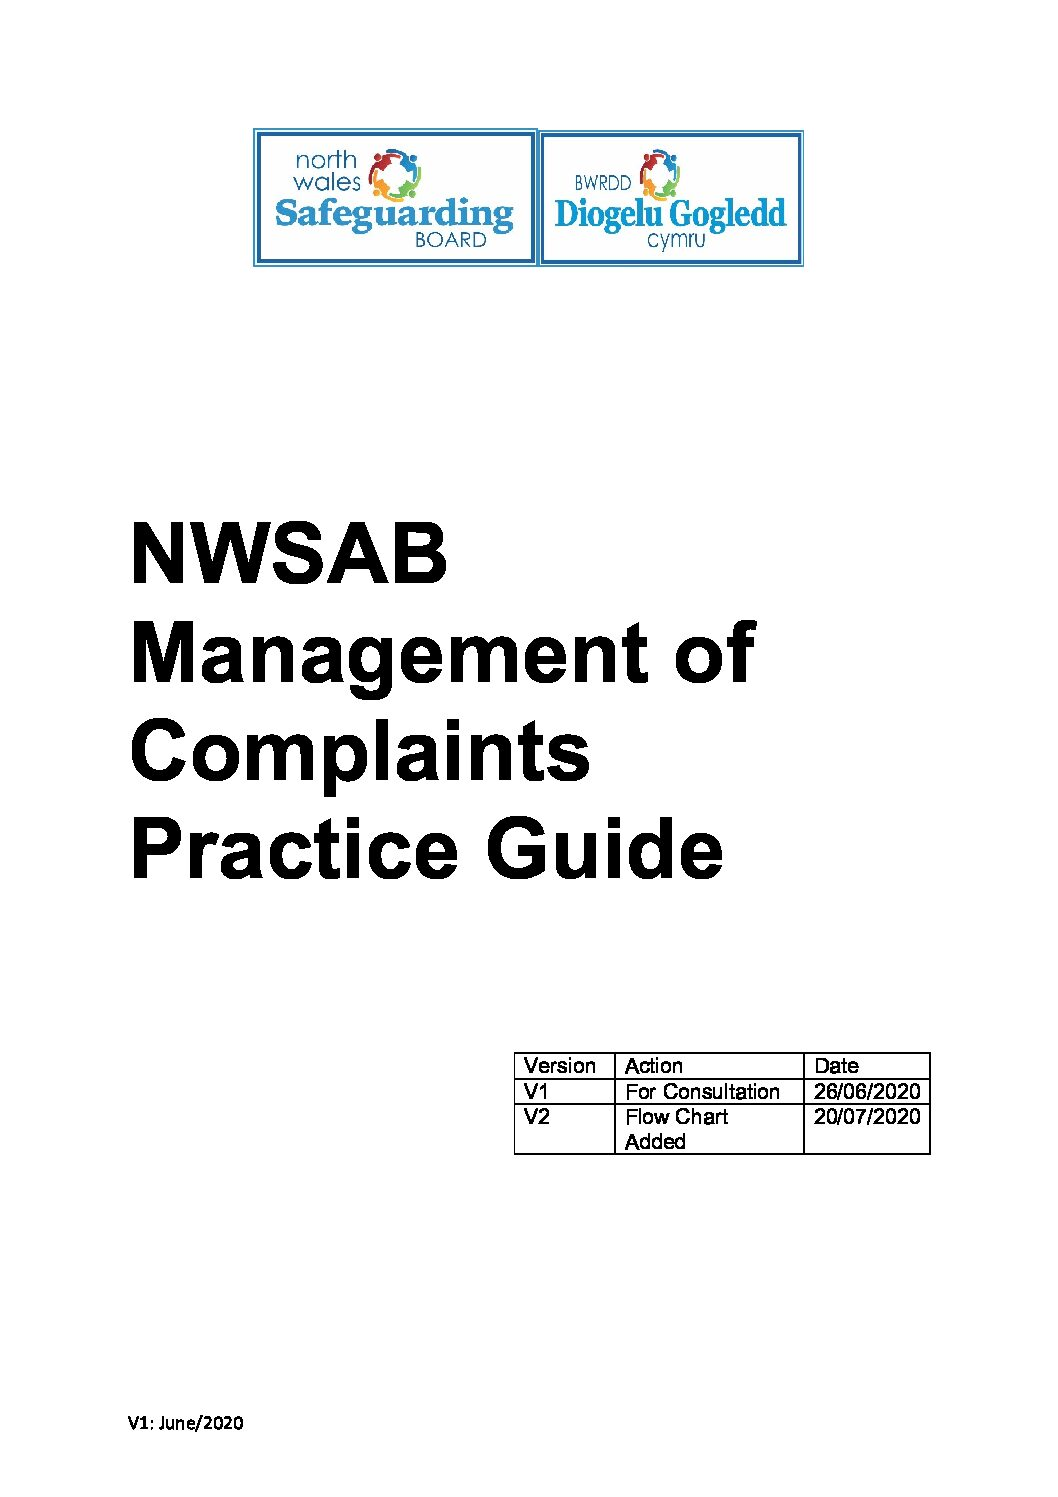 NWSAB Management of Complaints Practice Guide